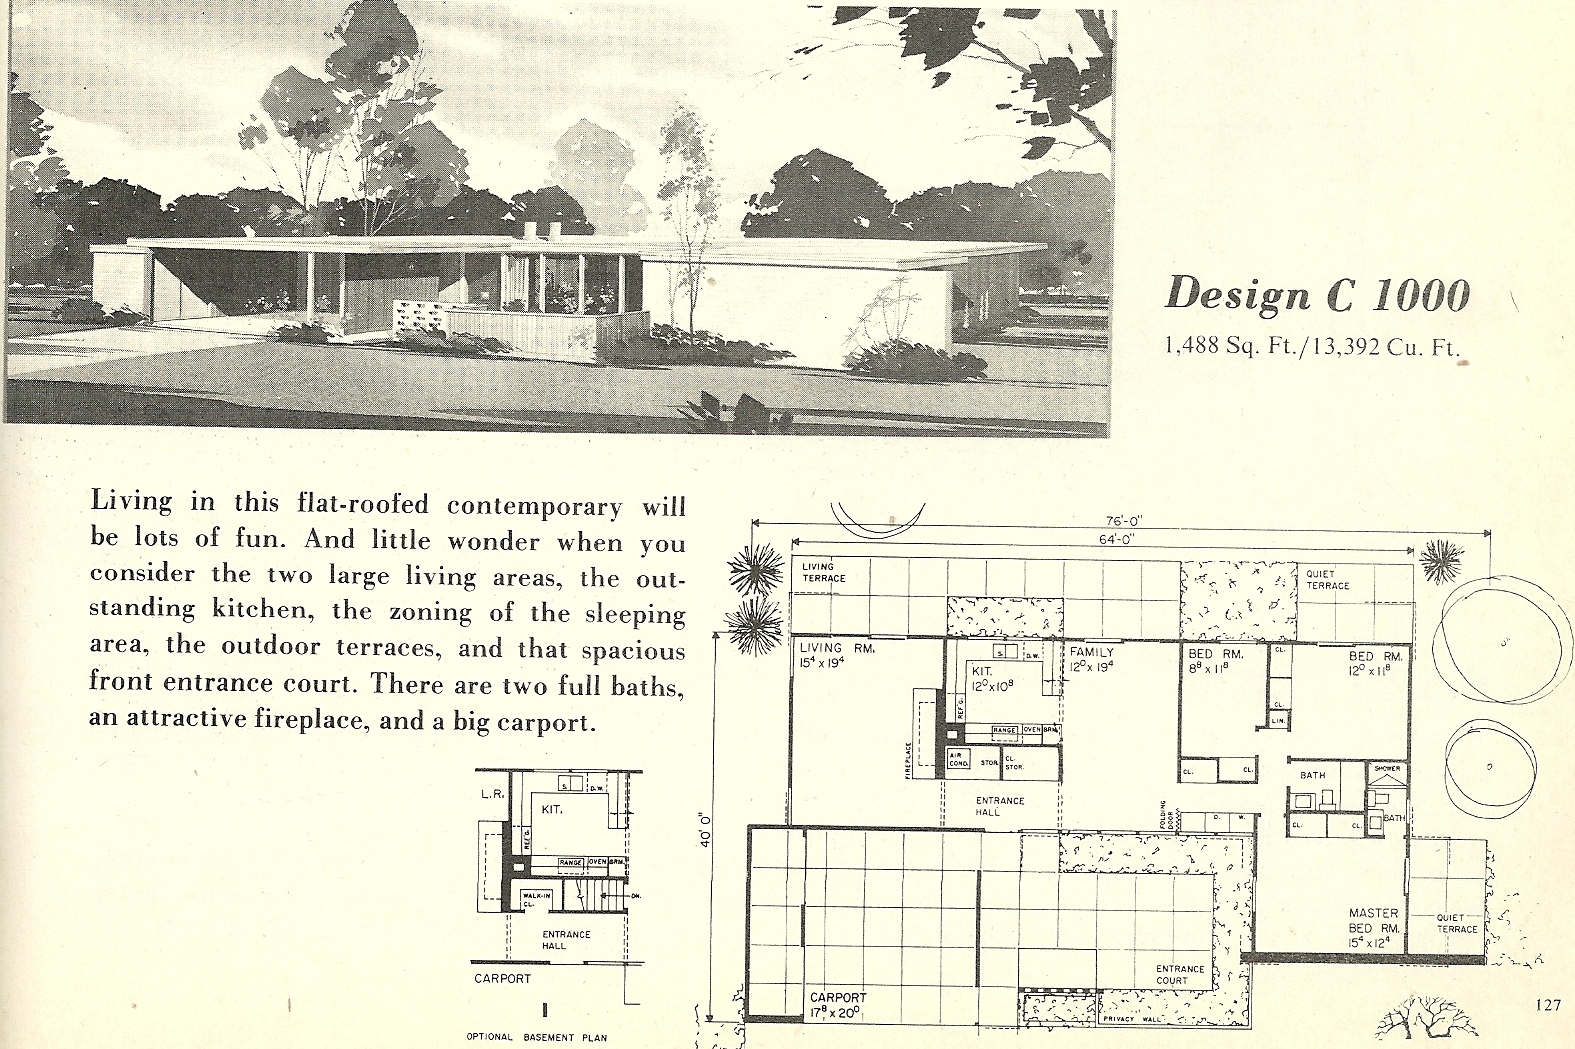 Showy In Vintage House Plans Mid Century Beauties Vintage House Plans Alter Ego Original Mid Century House Plans Mid Century House Plans Photos houzz 01 Mid Century Modern House Plans